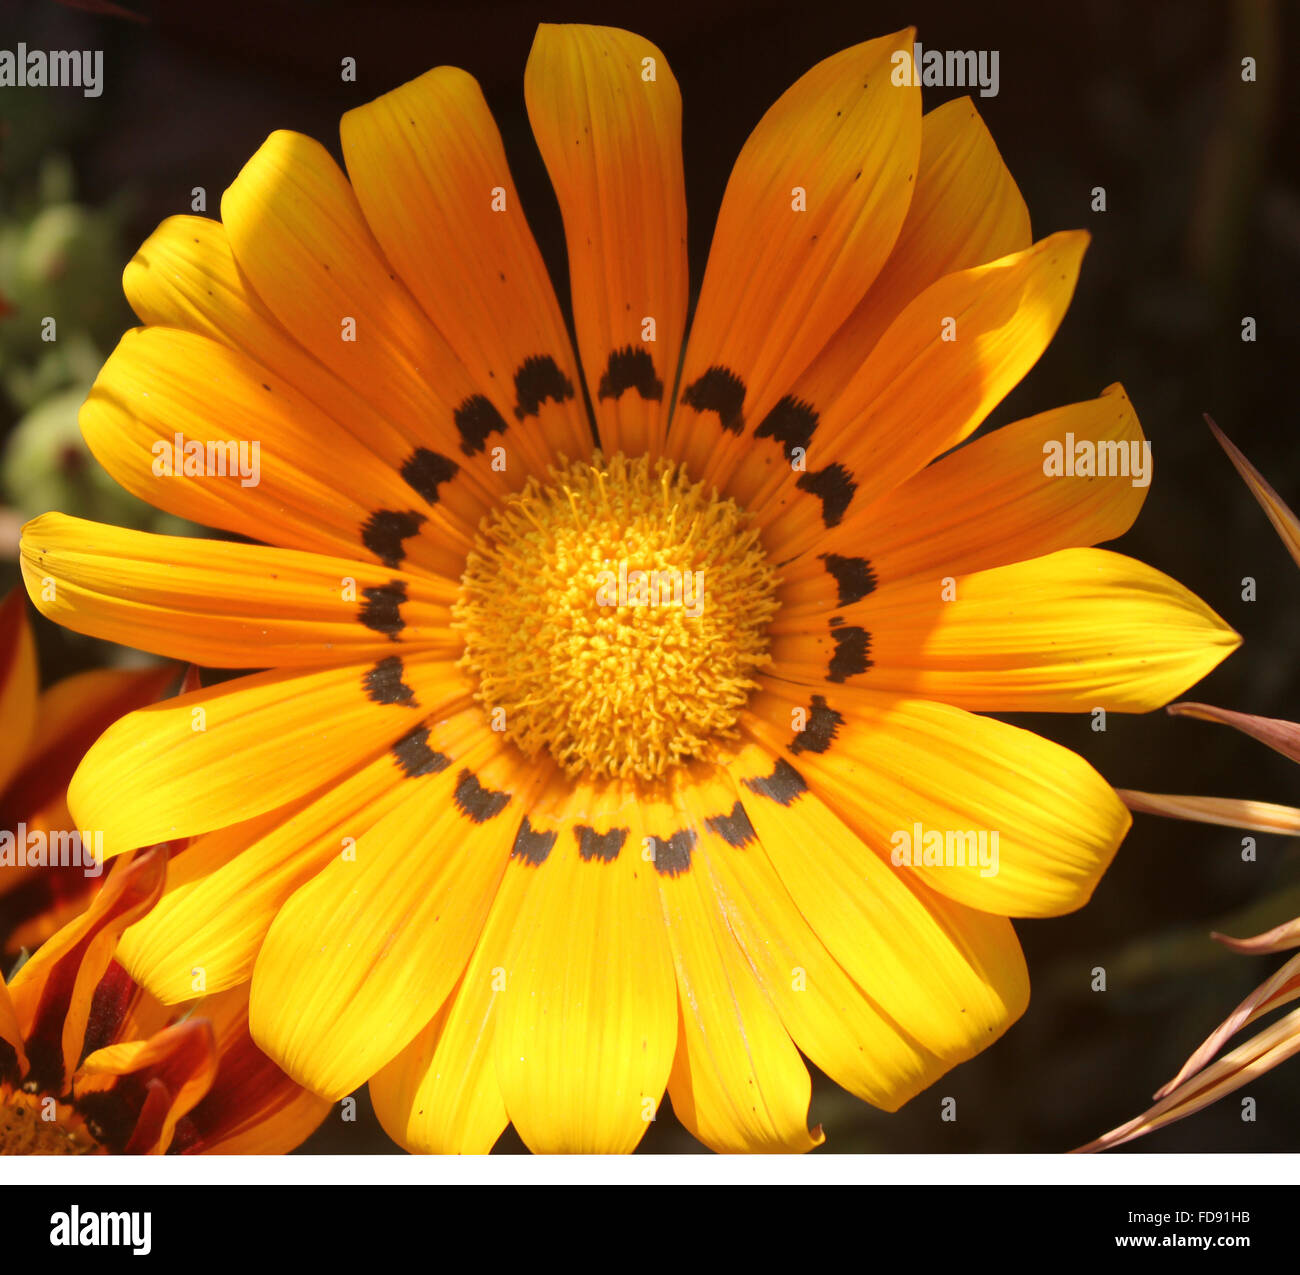 Gazania ringens 'Talent Orange', Cultivated ornamental herb with silvery hairy leaves in basal rosette and - Stock Image